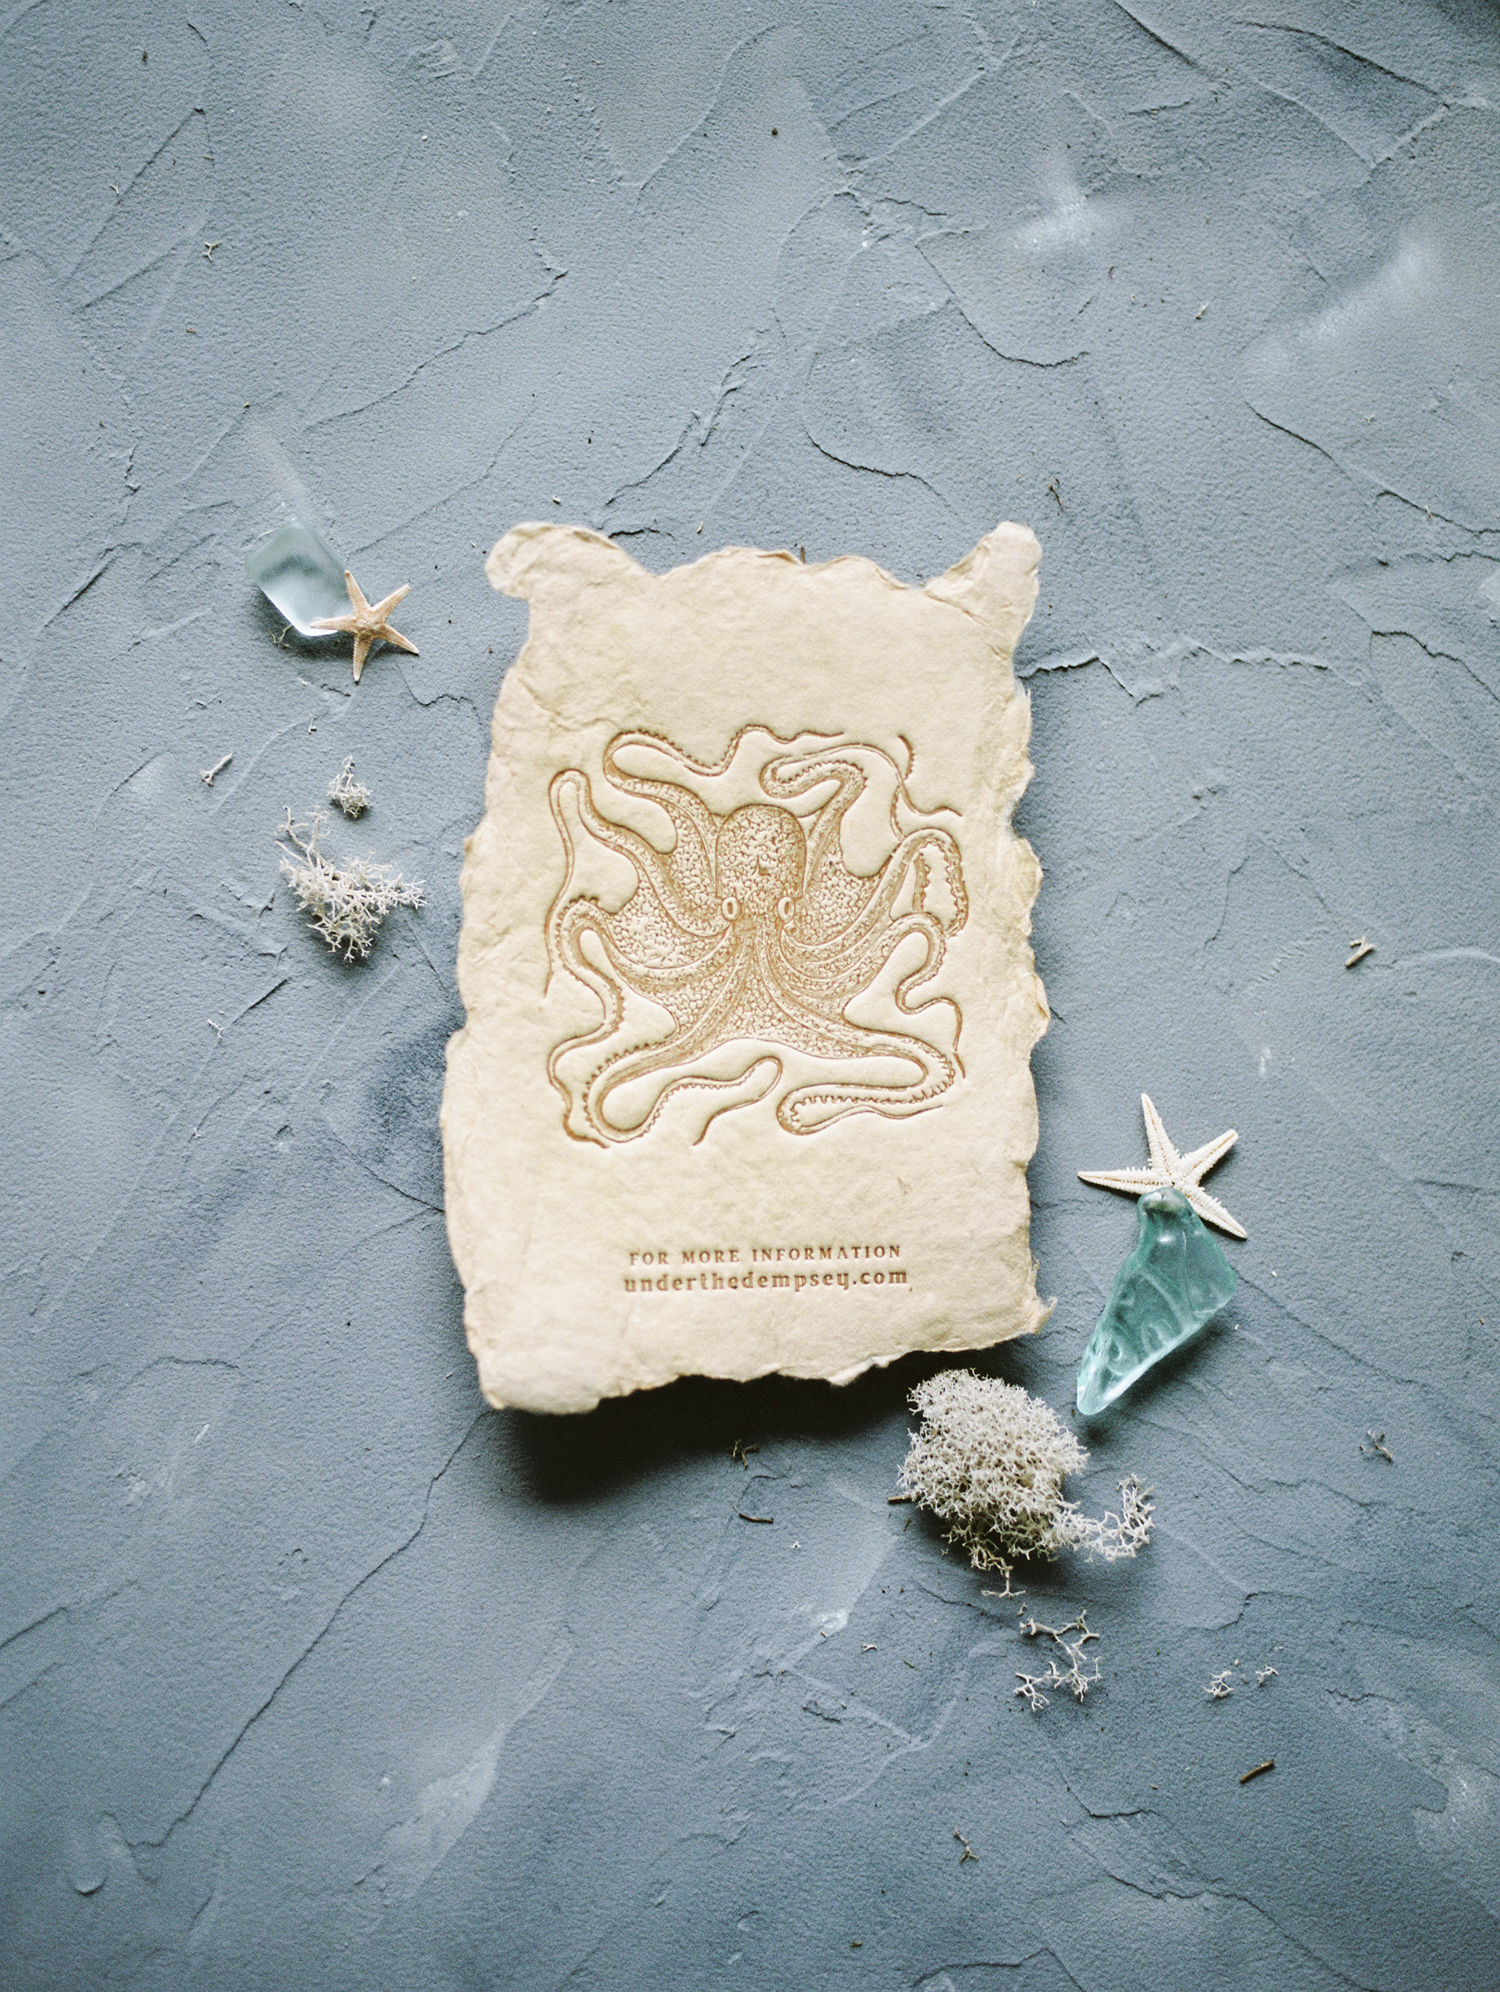 Custom wedding stationery on handmade paper created by a Michigan letterpress design studio is captured on film during a brand photo shoot near Detroit